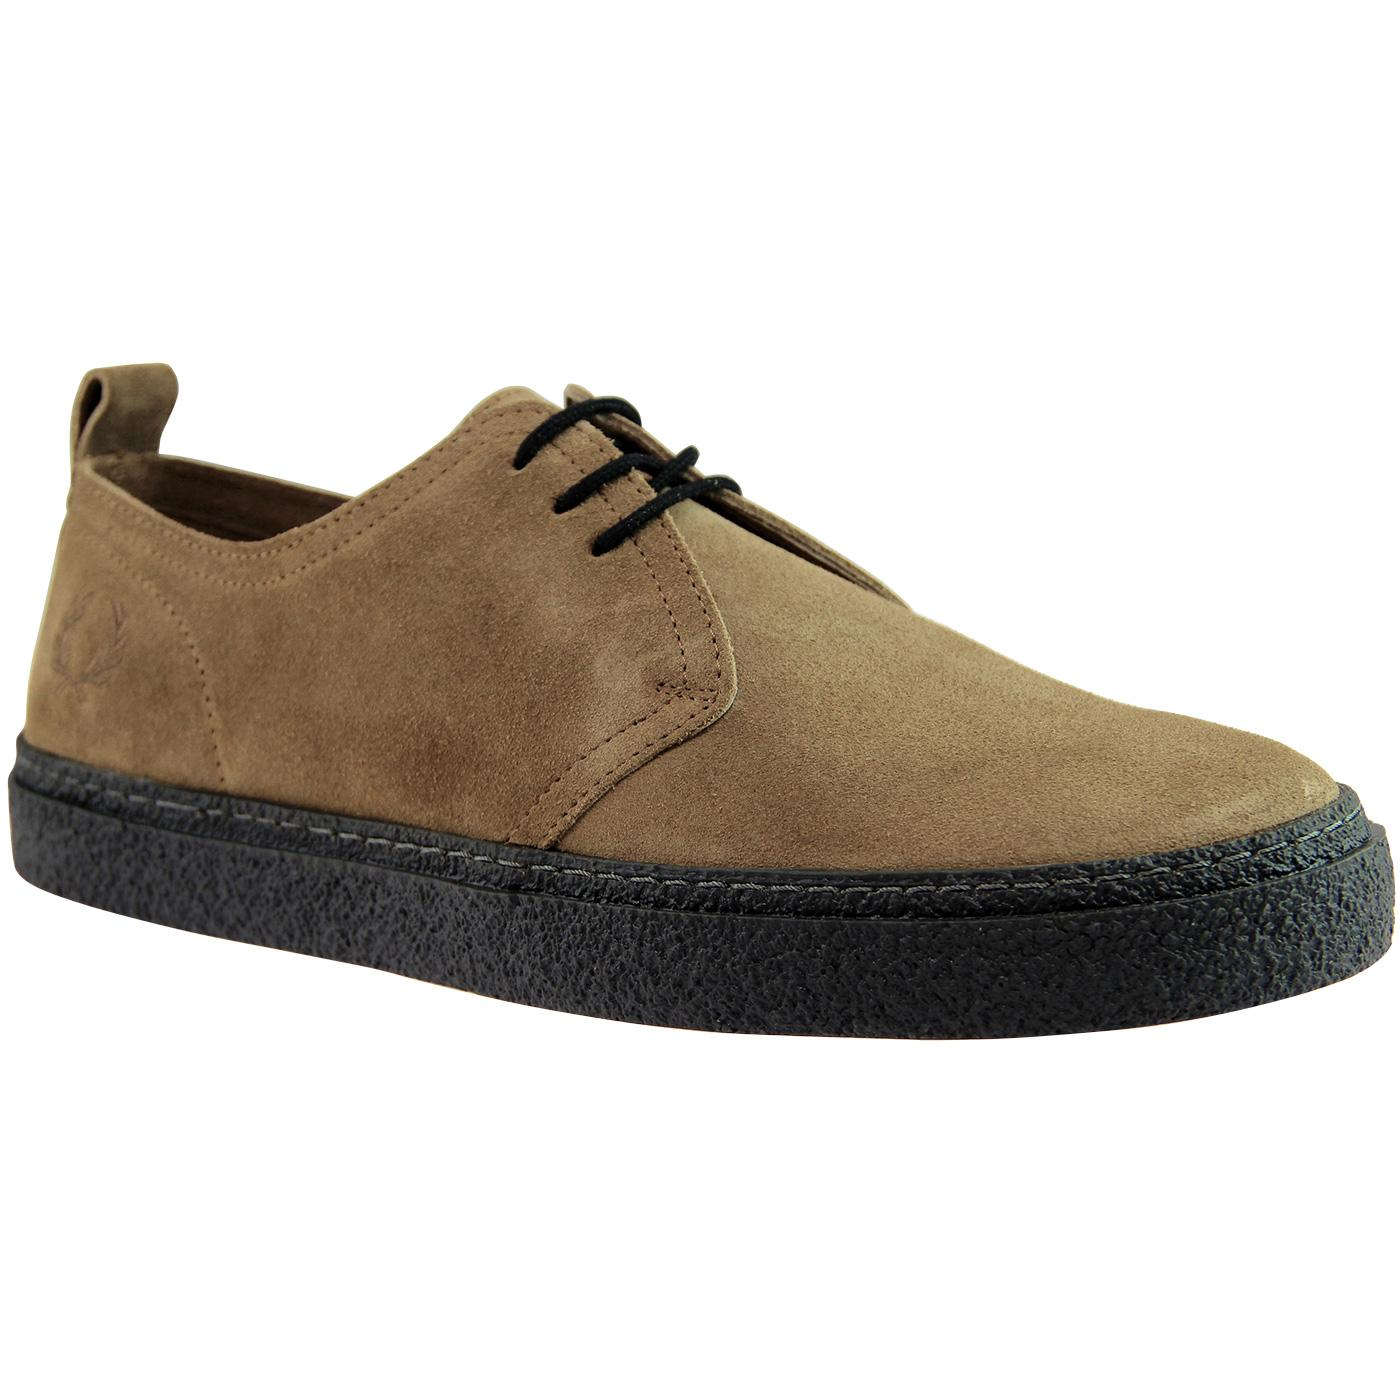 Linden FRED PERRY Retro Mod Suede Shoes - Almond